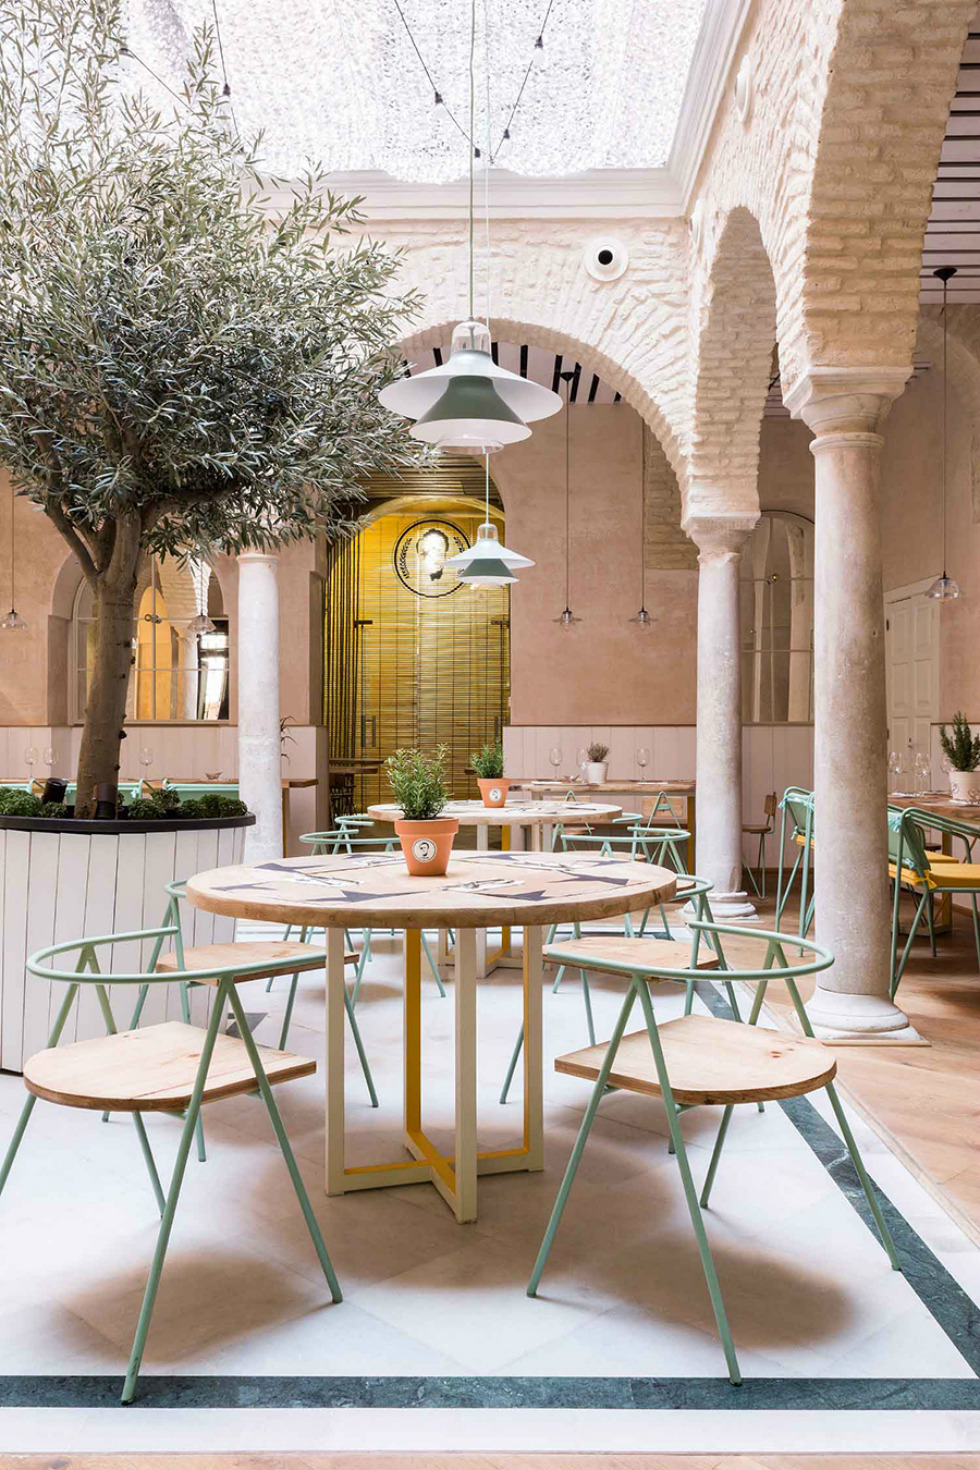 Spanish restaurant with a great design El Pintón - 2 spanish restaurantSpanish restaurant with a great design: El PintónSpanish restaurant with a great design El Pint  n 2